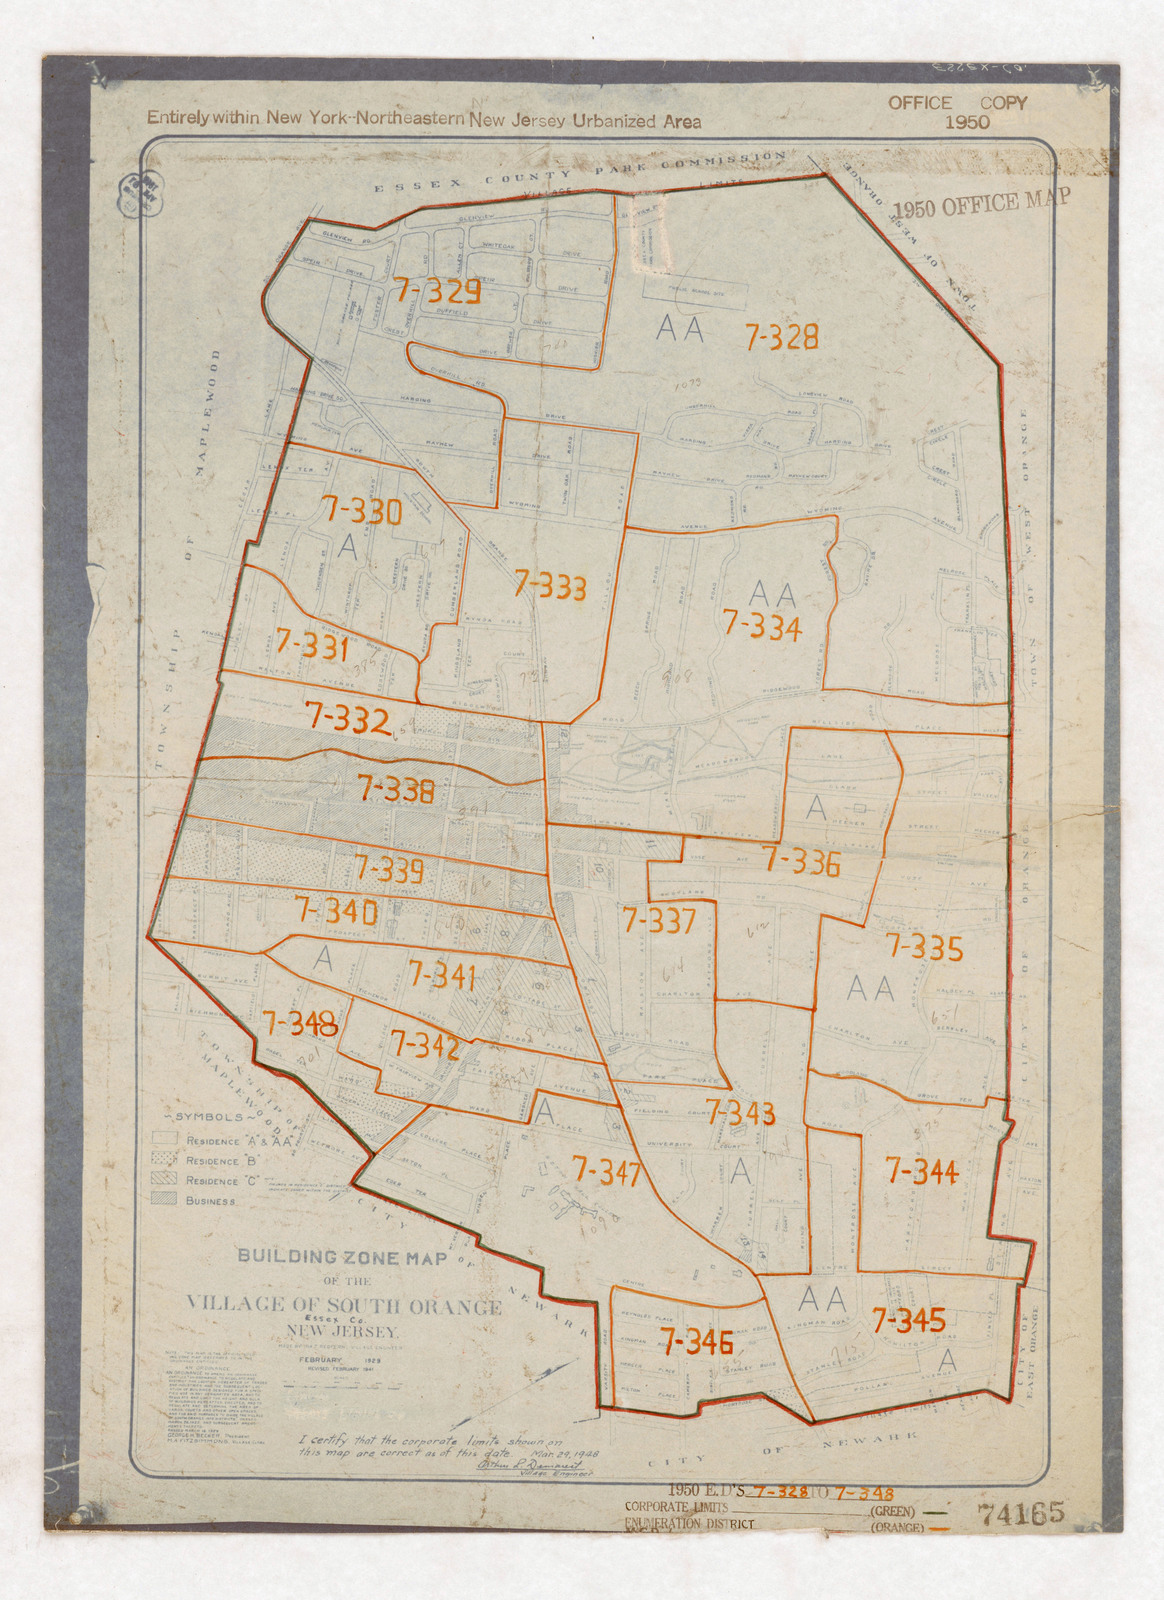 1950 Census Enumeration District Maps - New Jersey (NJ) - Es ... on